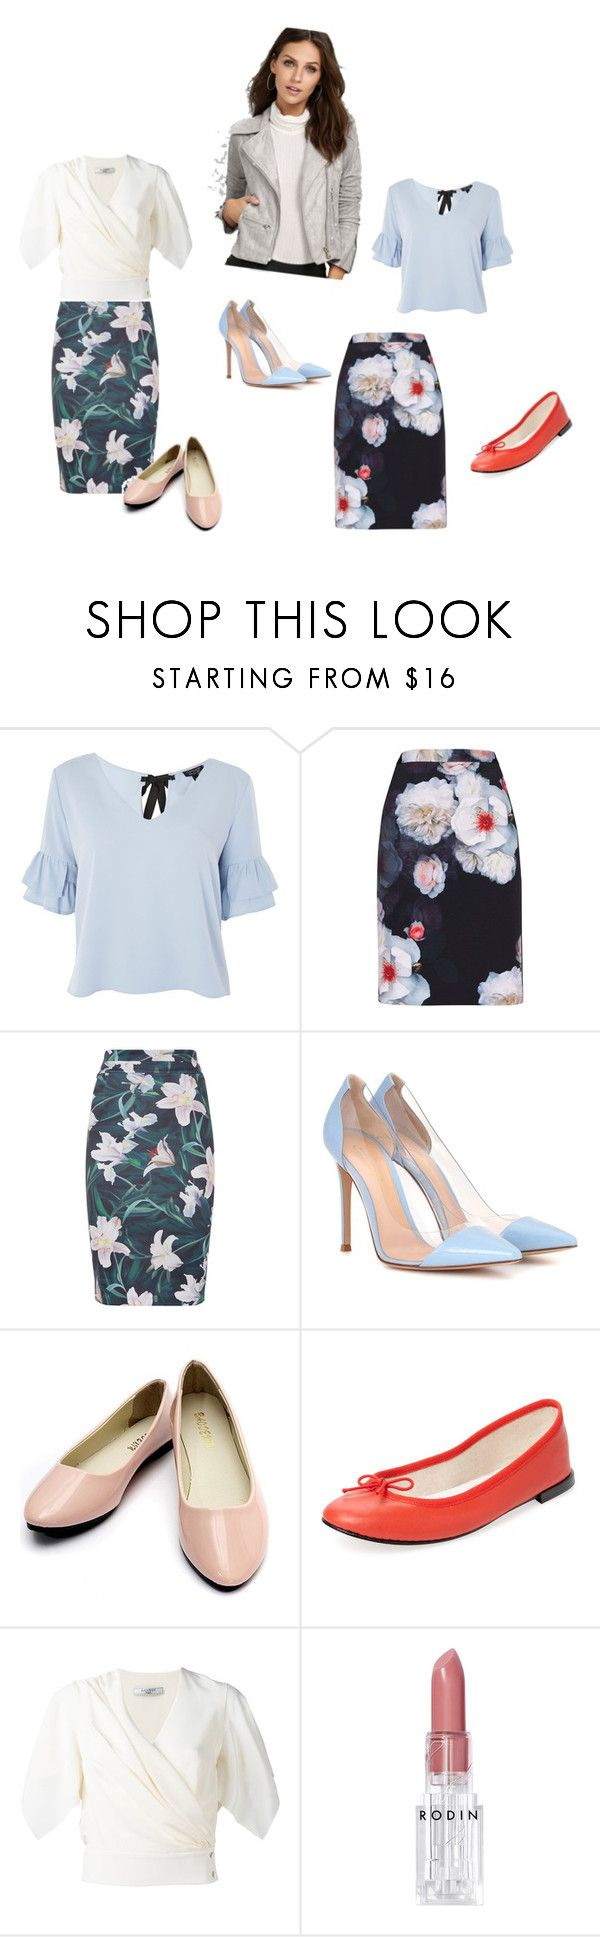 """""""Creative Femininity Work Outfits"""" by lesleyhudson on Polyvore featuring Topshop, Ted Baker, Gianvito Rossi, Repetto, Lanvin, Rodin and Olivaceous"""